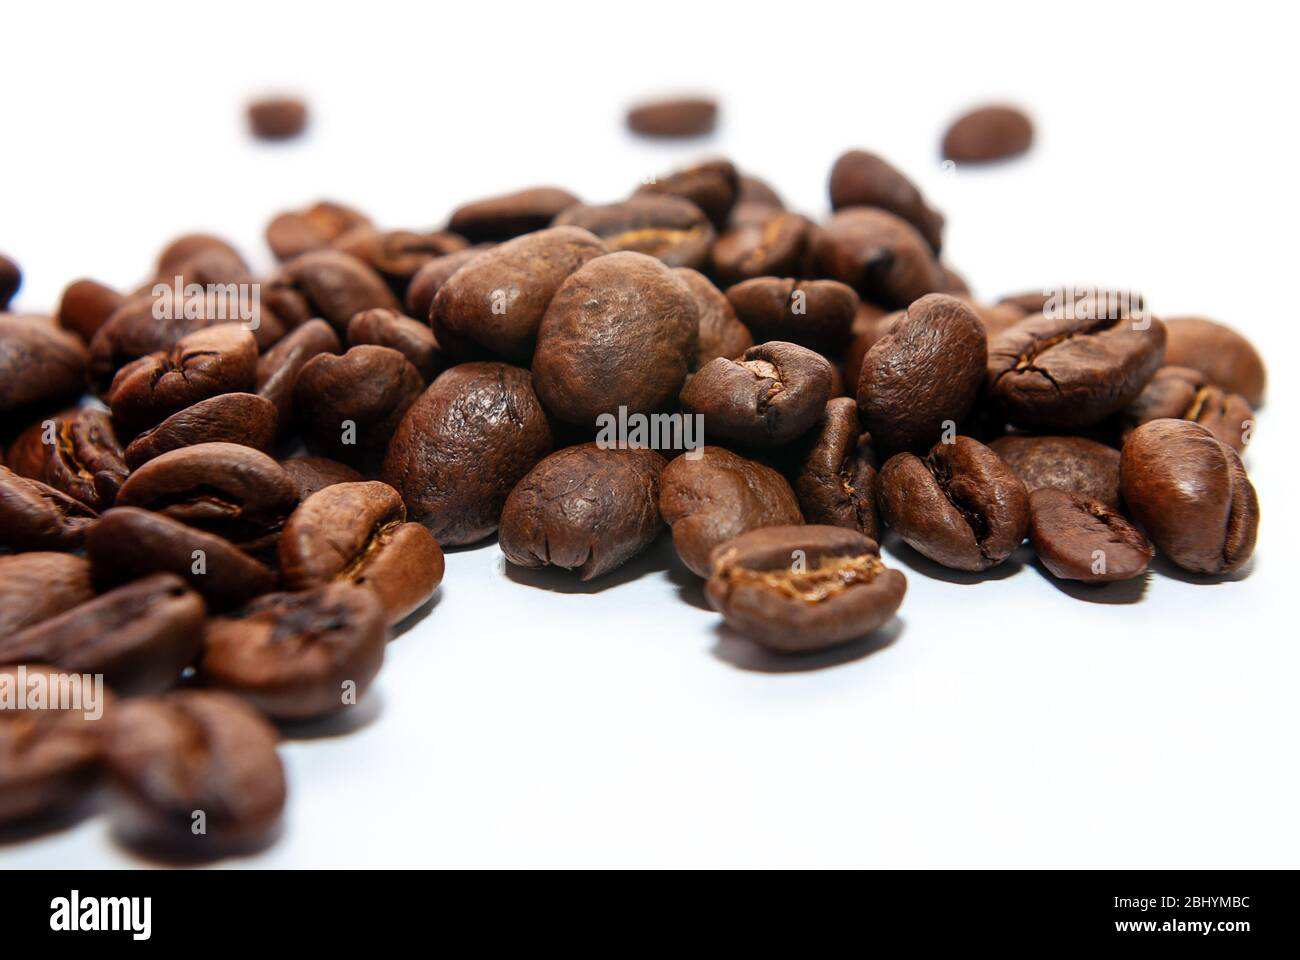 Coffee beans on a white background. Stock Photo